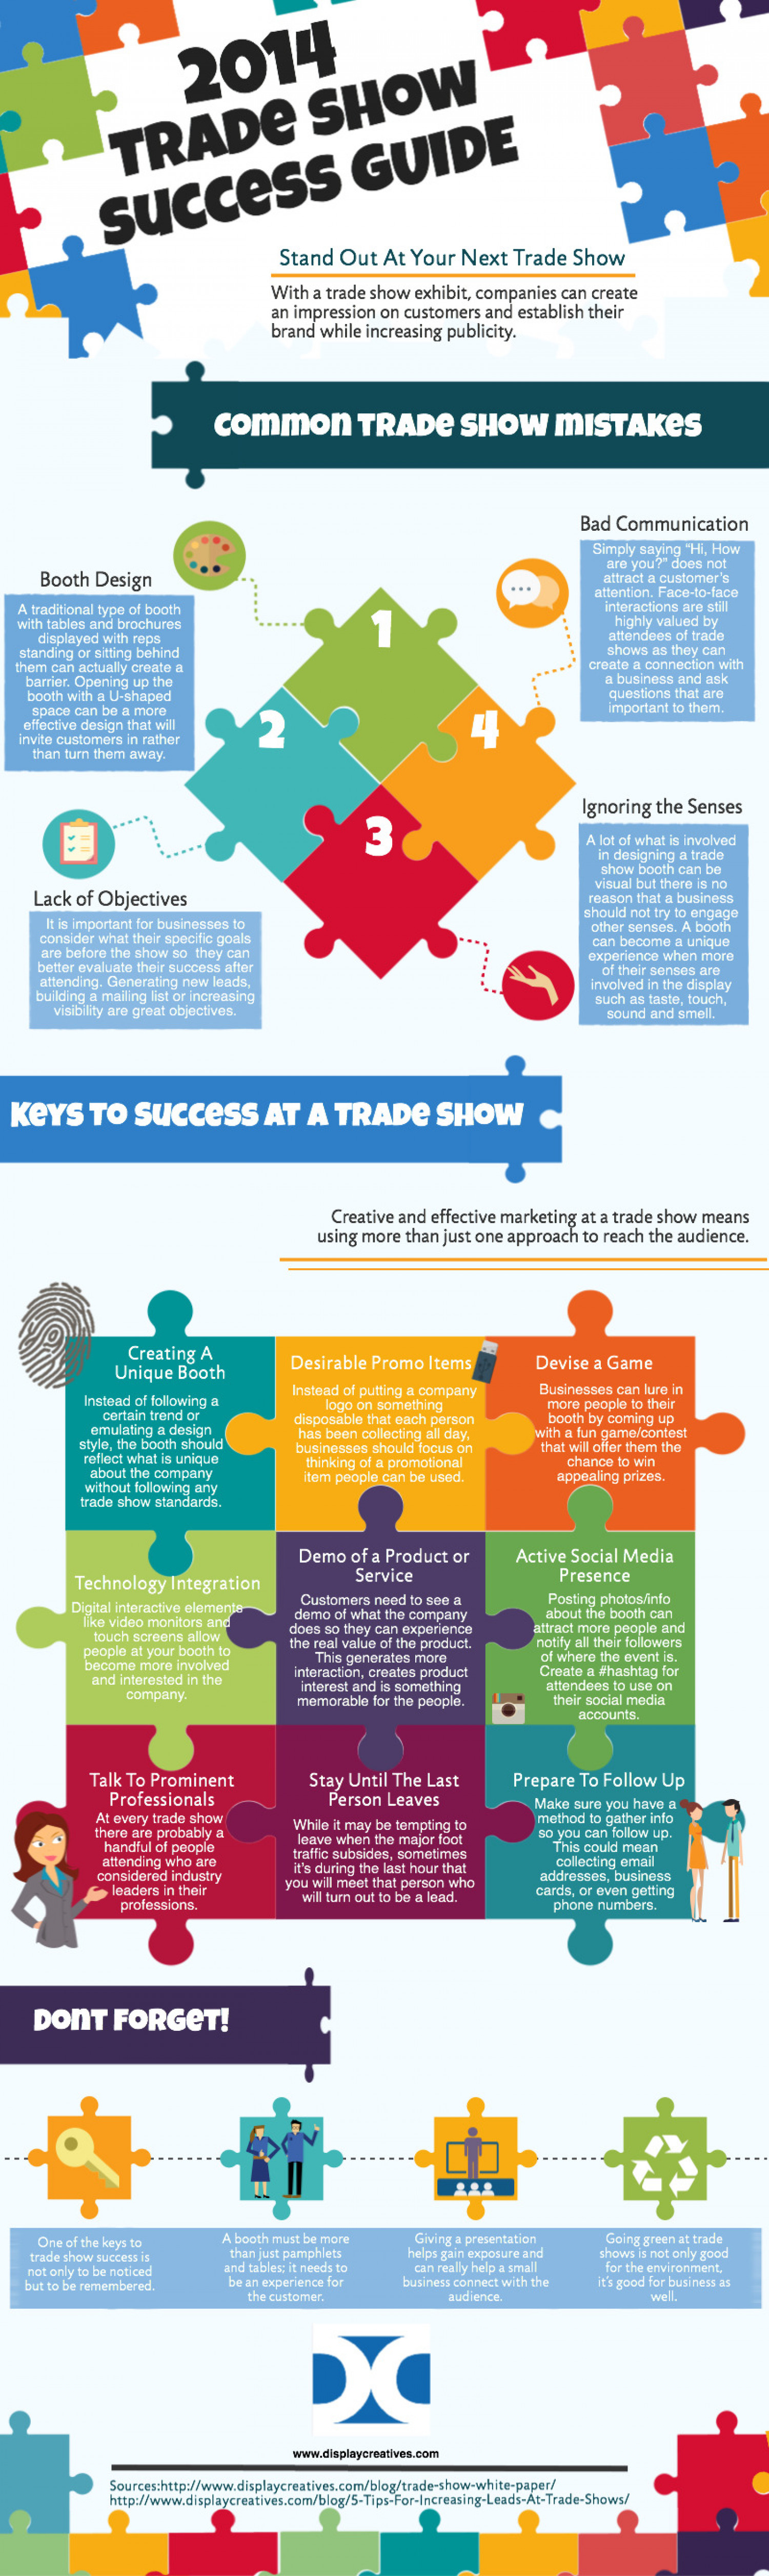 2014 Trade Show Success Guide Infographic